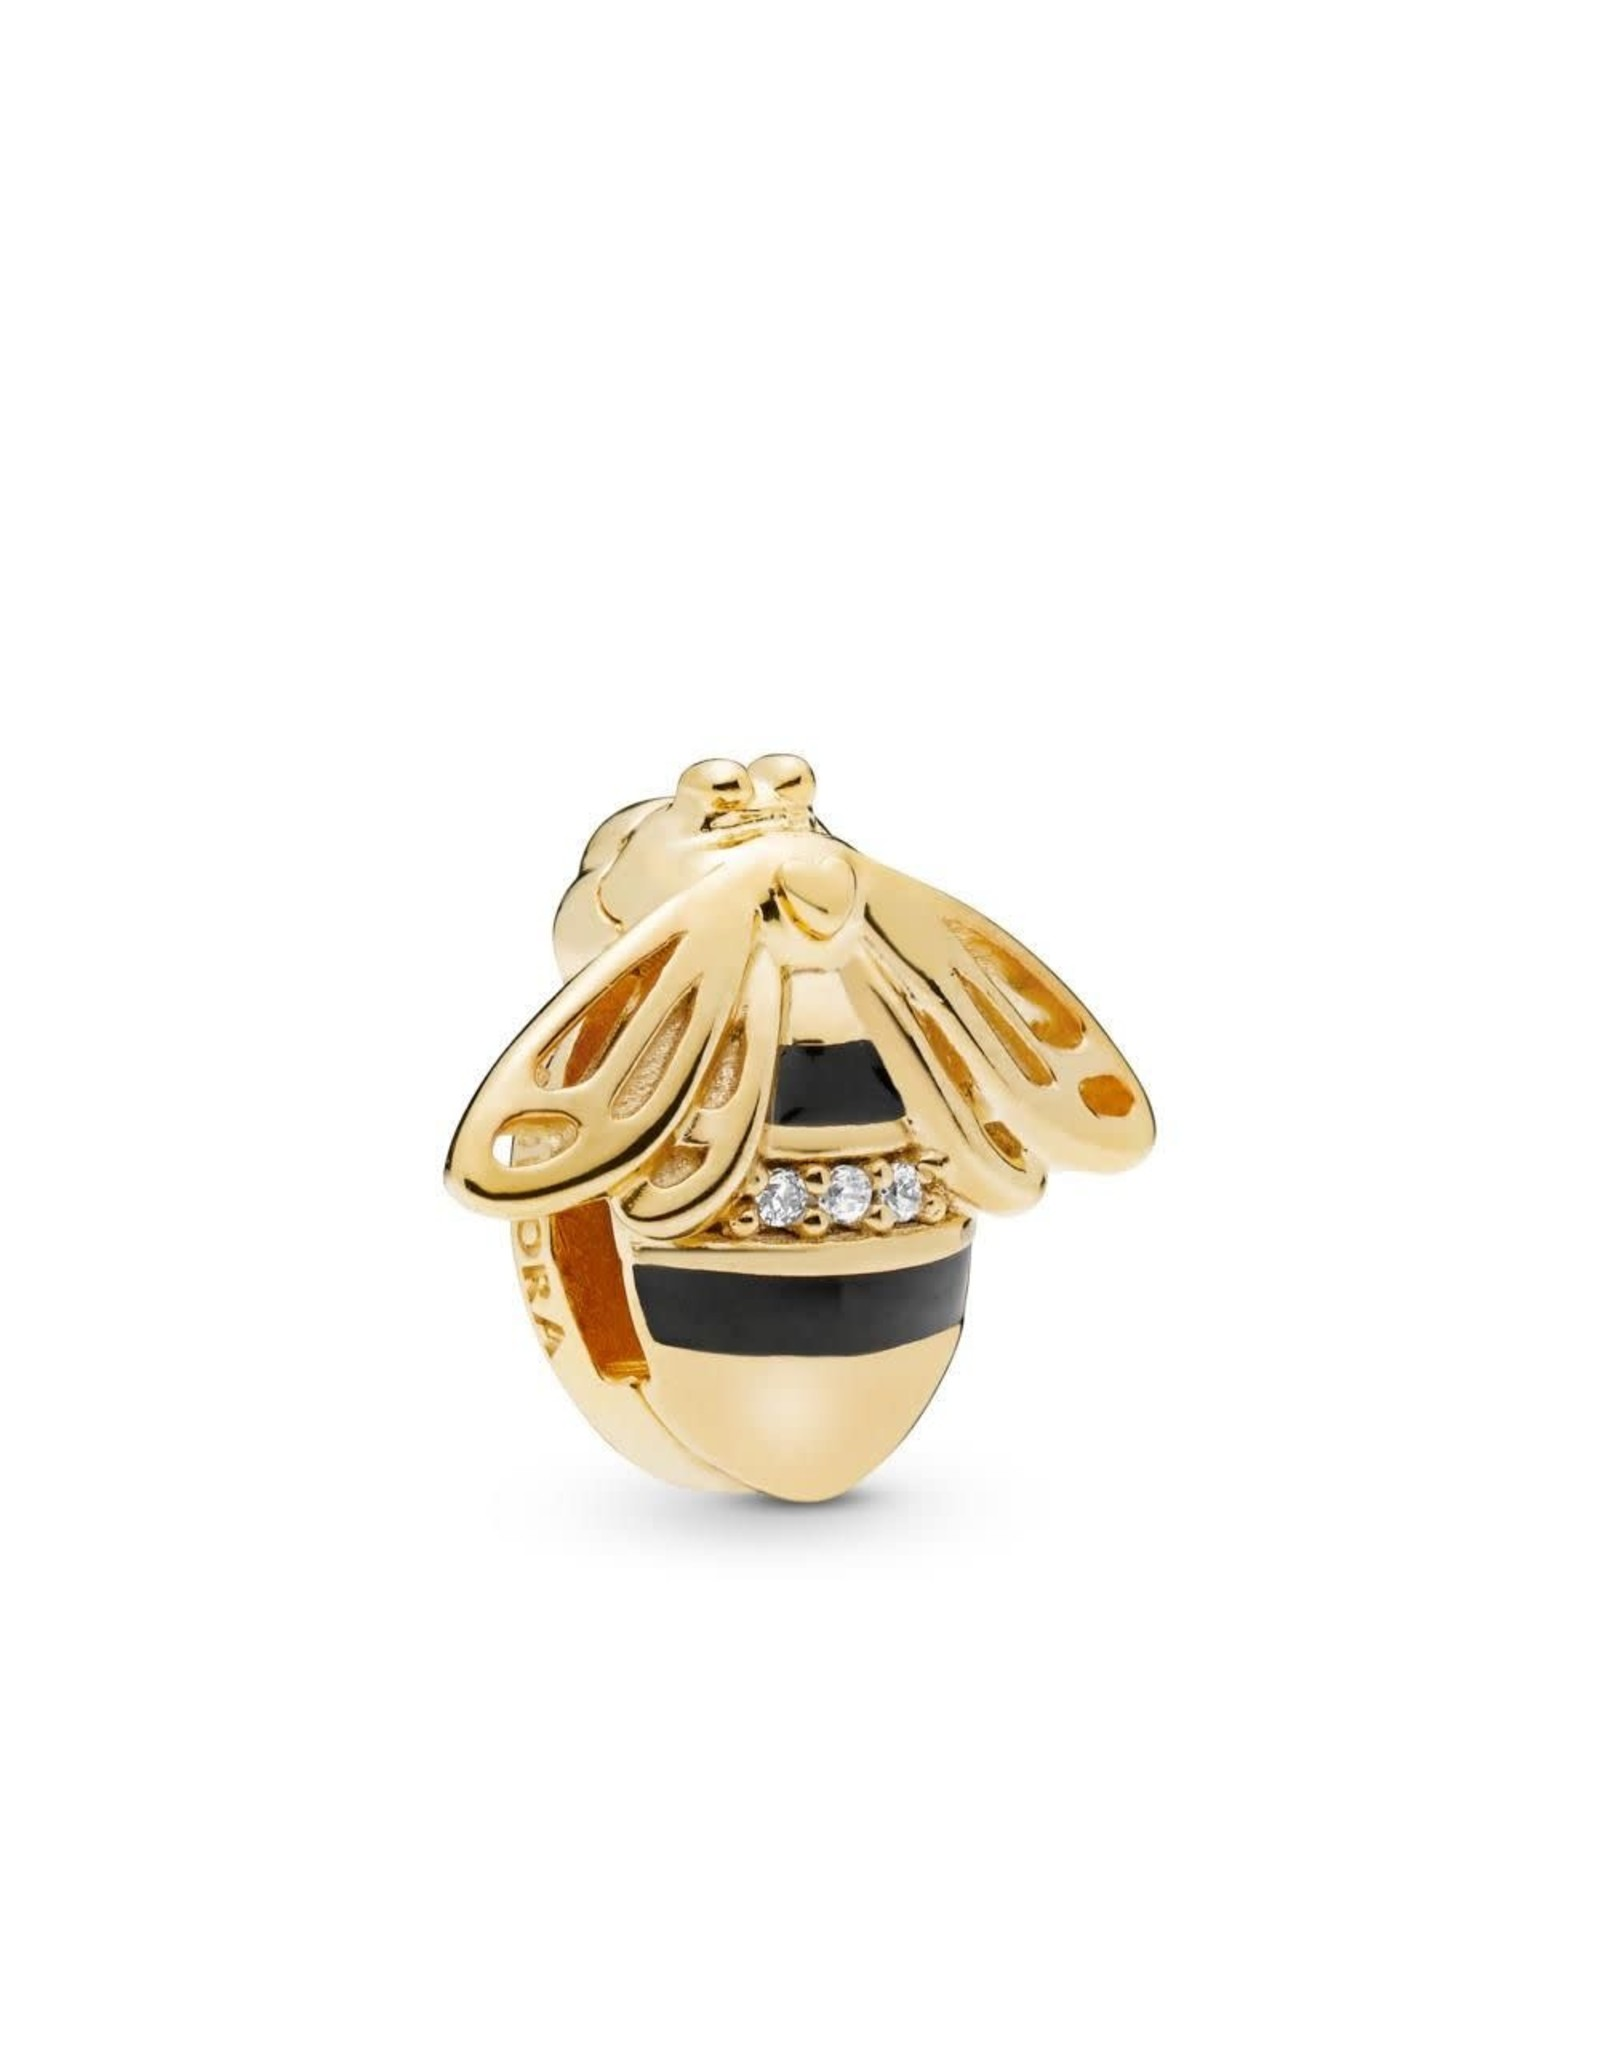 Pandora Pandora Reflexions Bee Clip Charm In Shine With 3 Bead-Set Clear CZ And Black Enamel